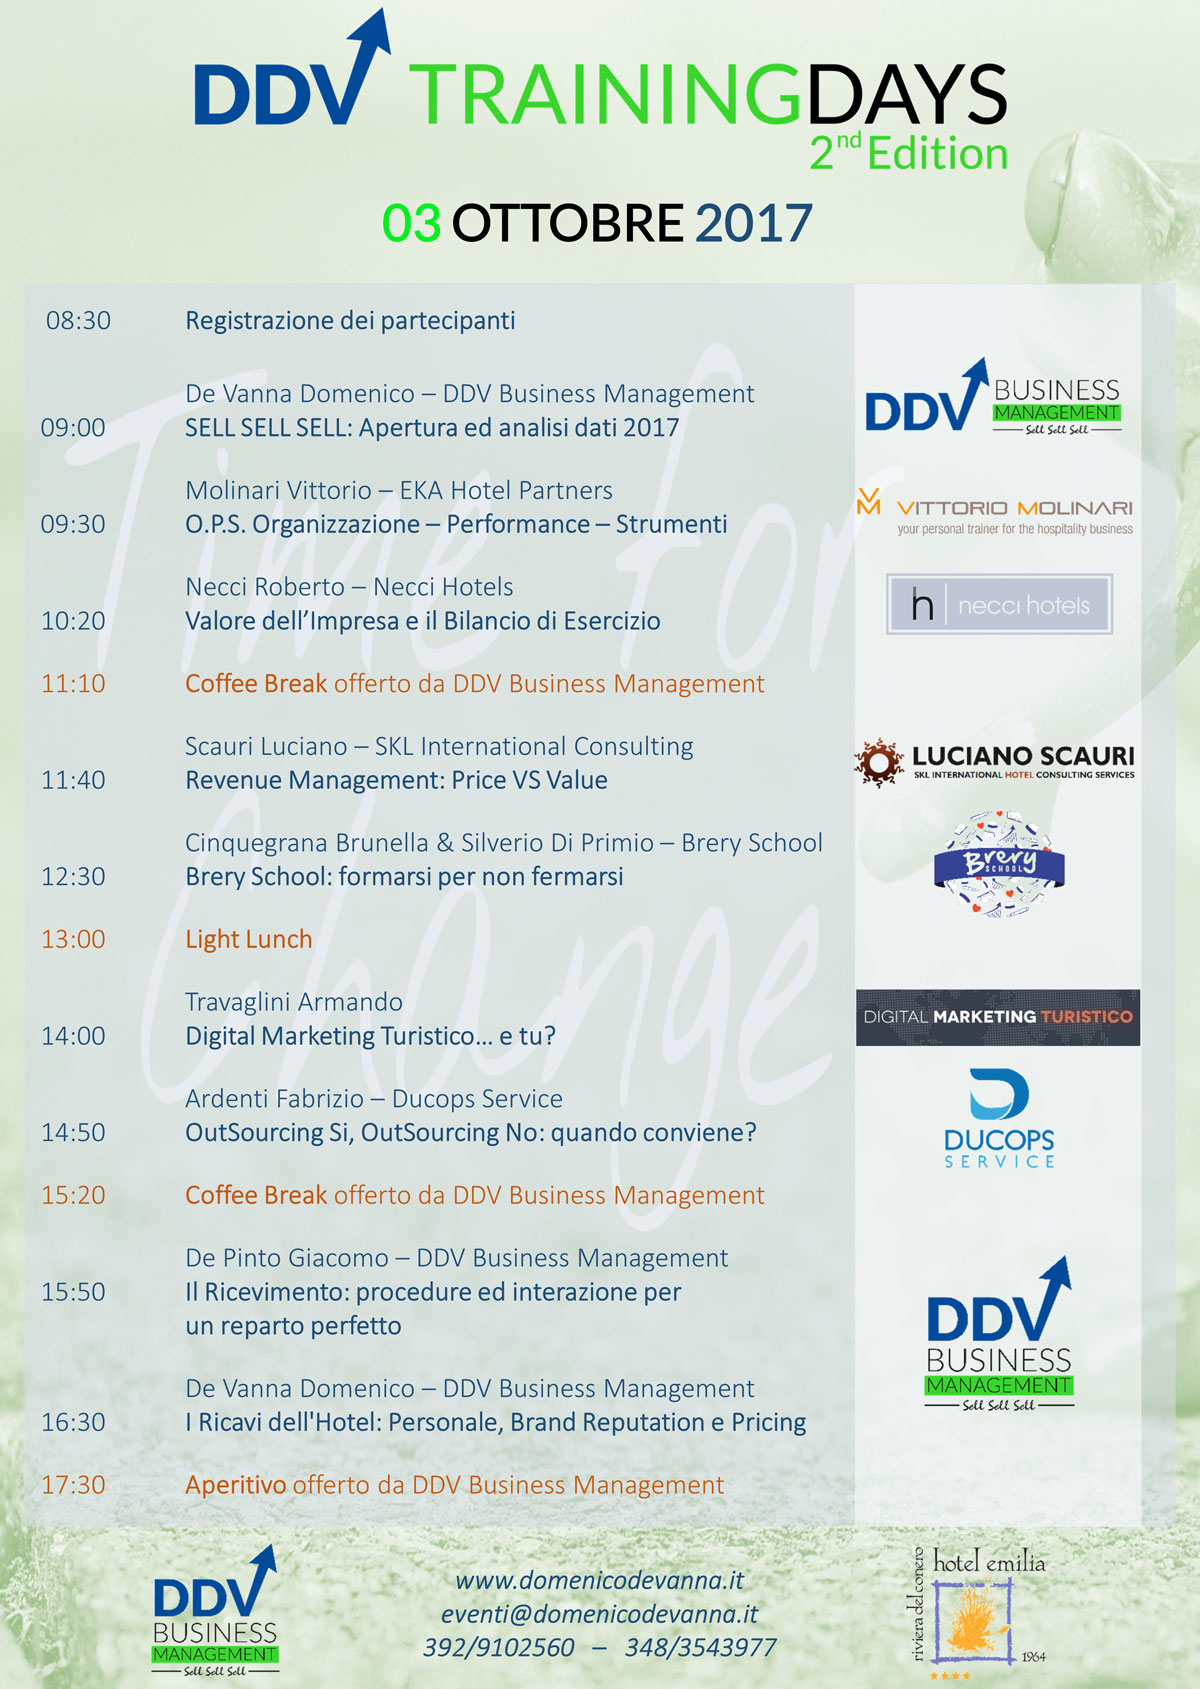 ddv-training-day-seconda-edizione